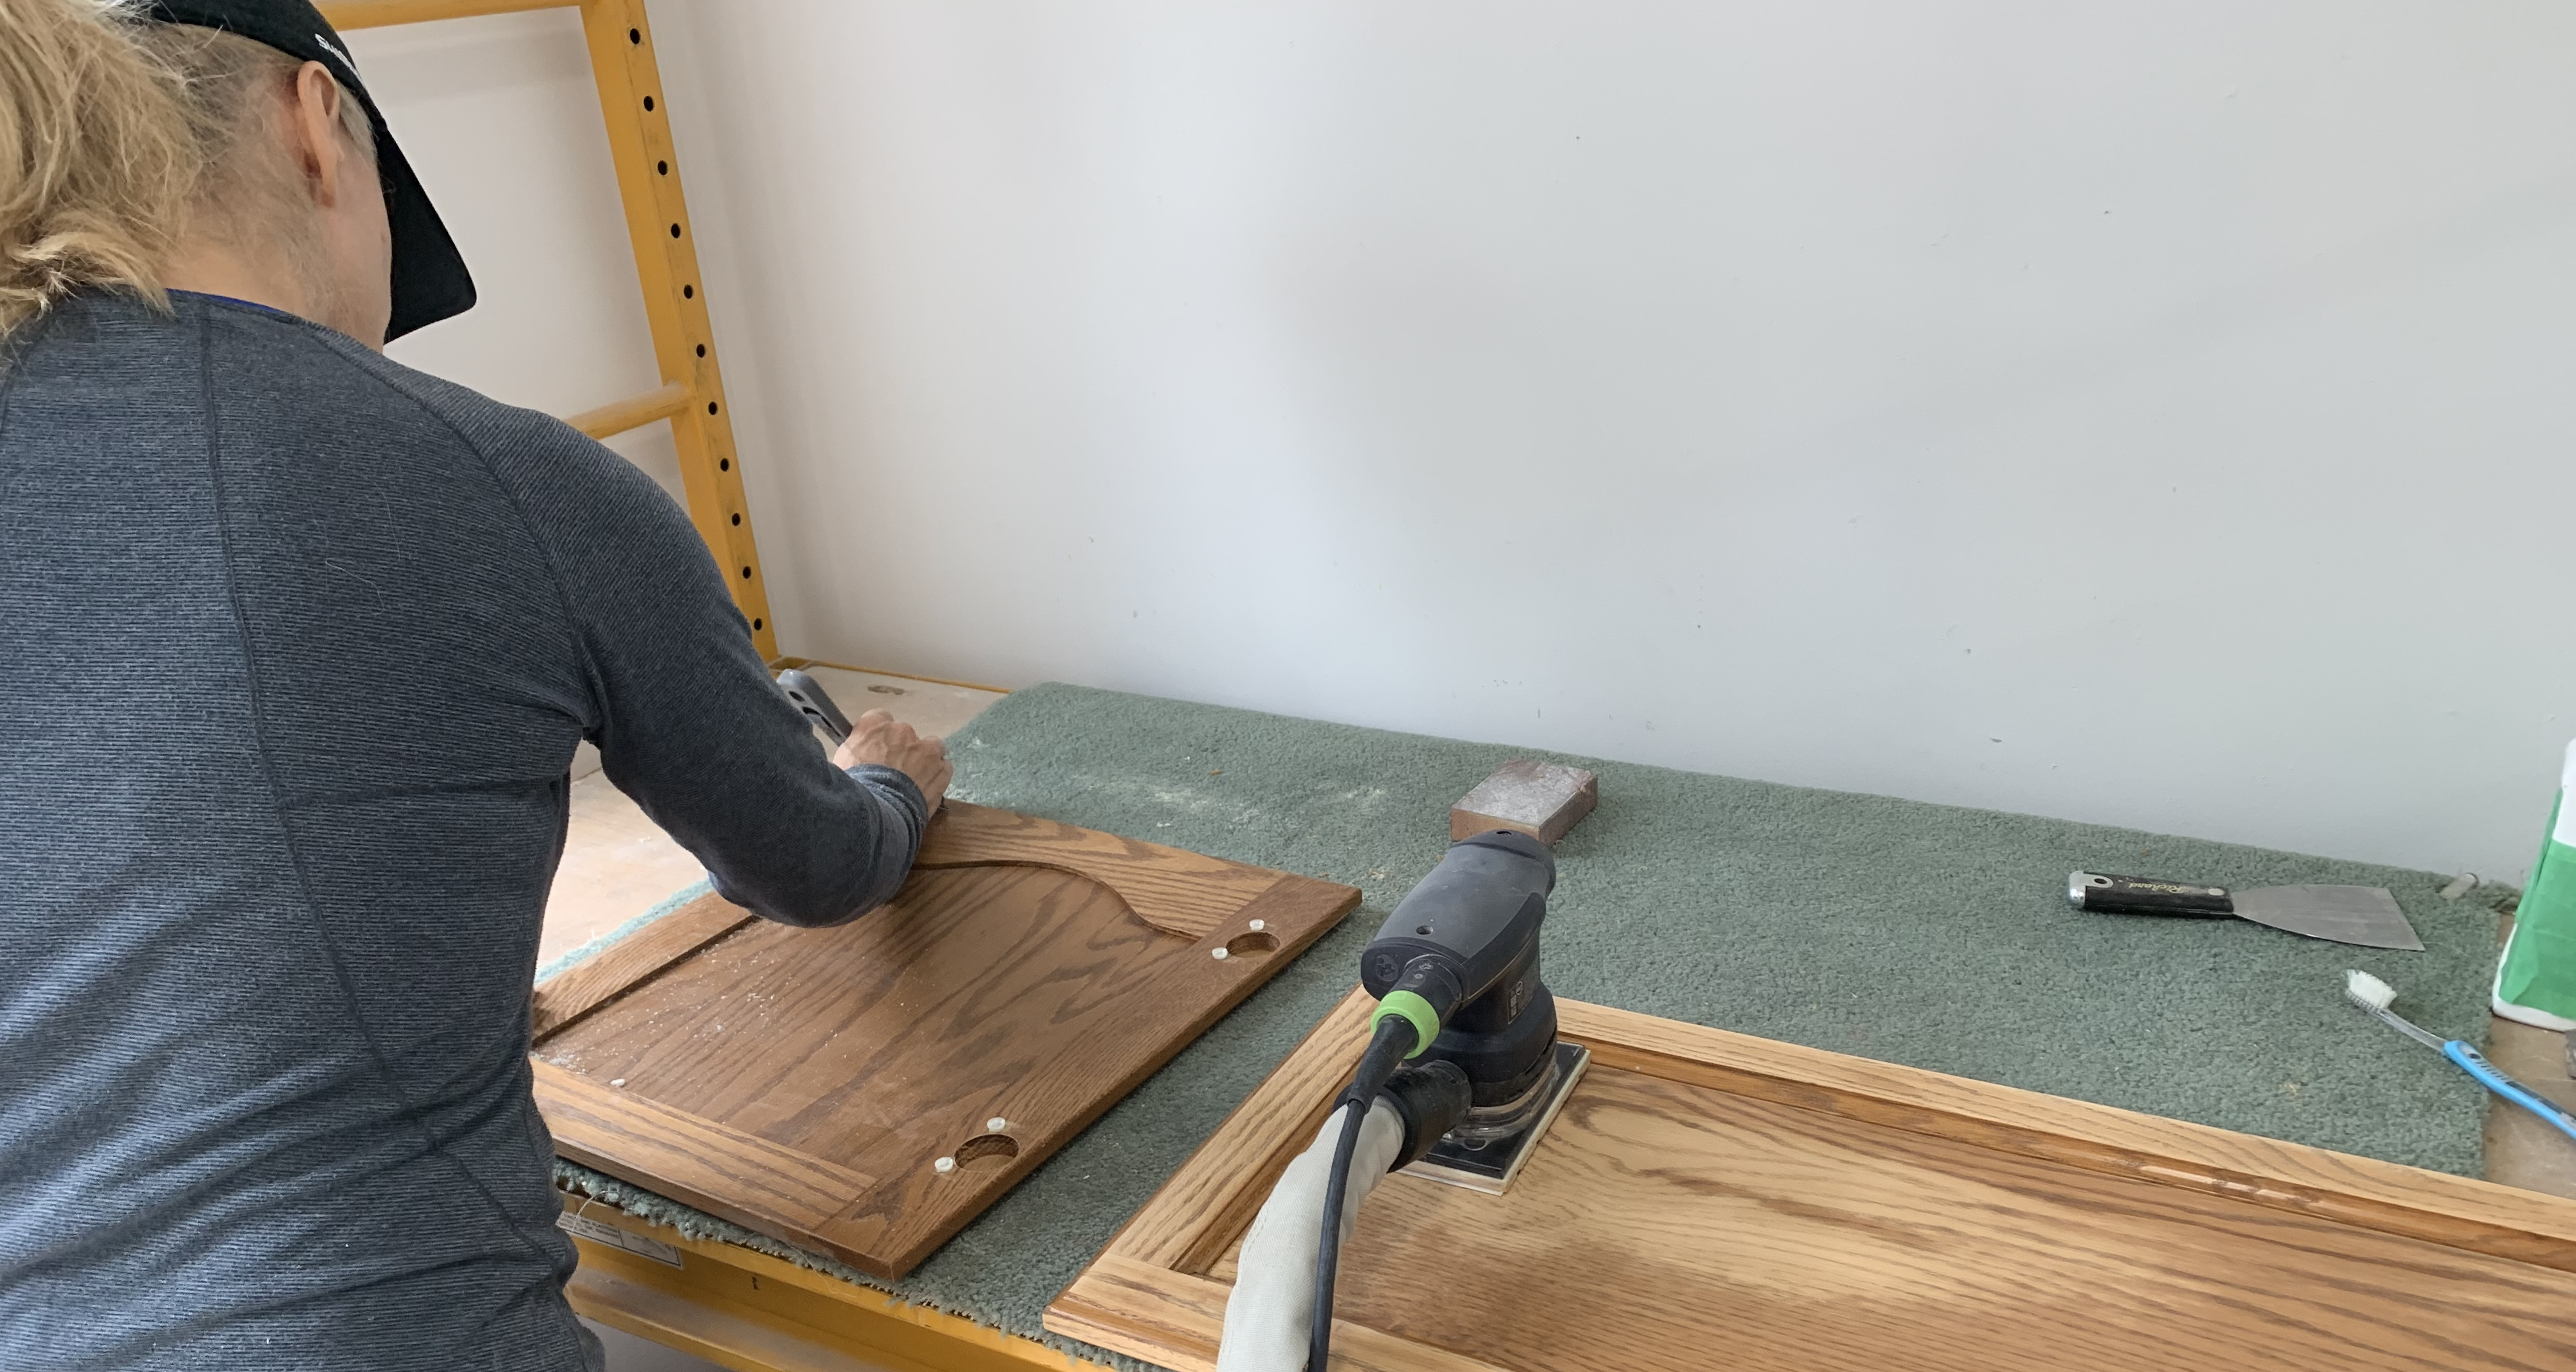 Getting My How To Prep And Paint Kitchen Cabinets - Residential Painting.Contractors - Best Cabinet Prepping Tips To Work